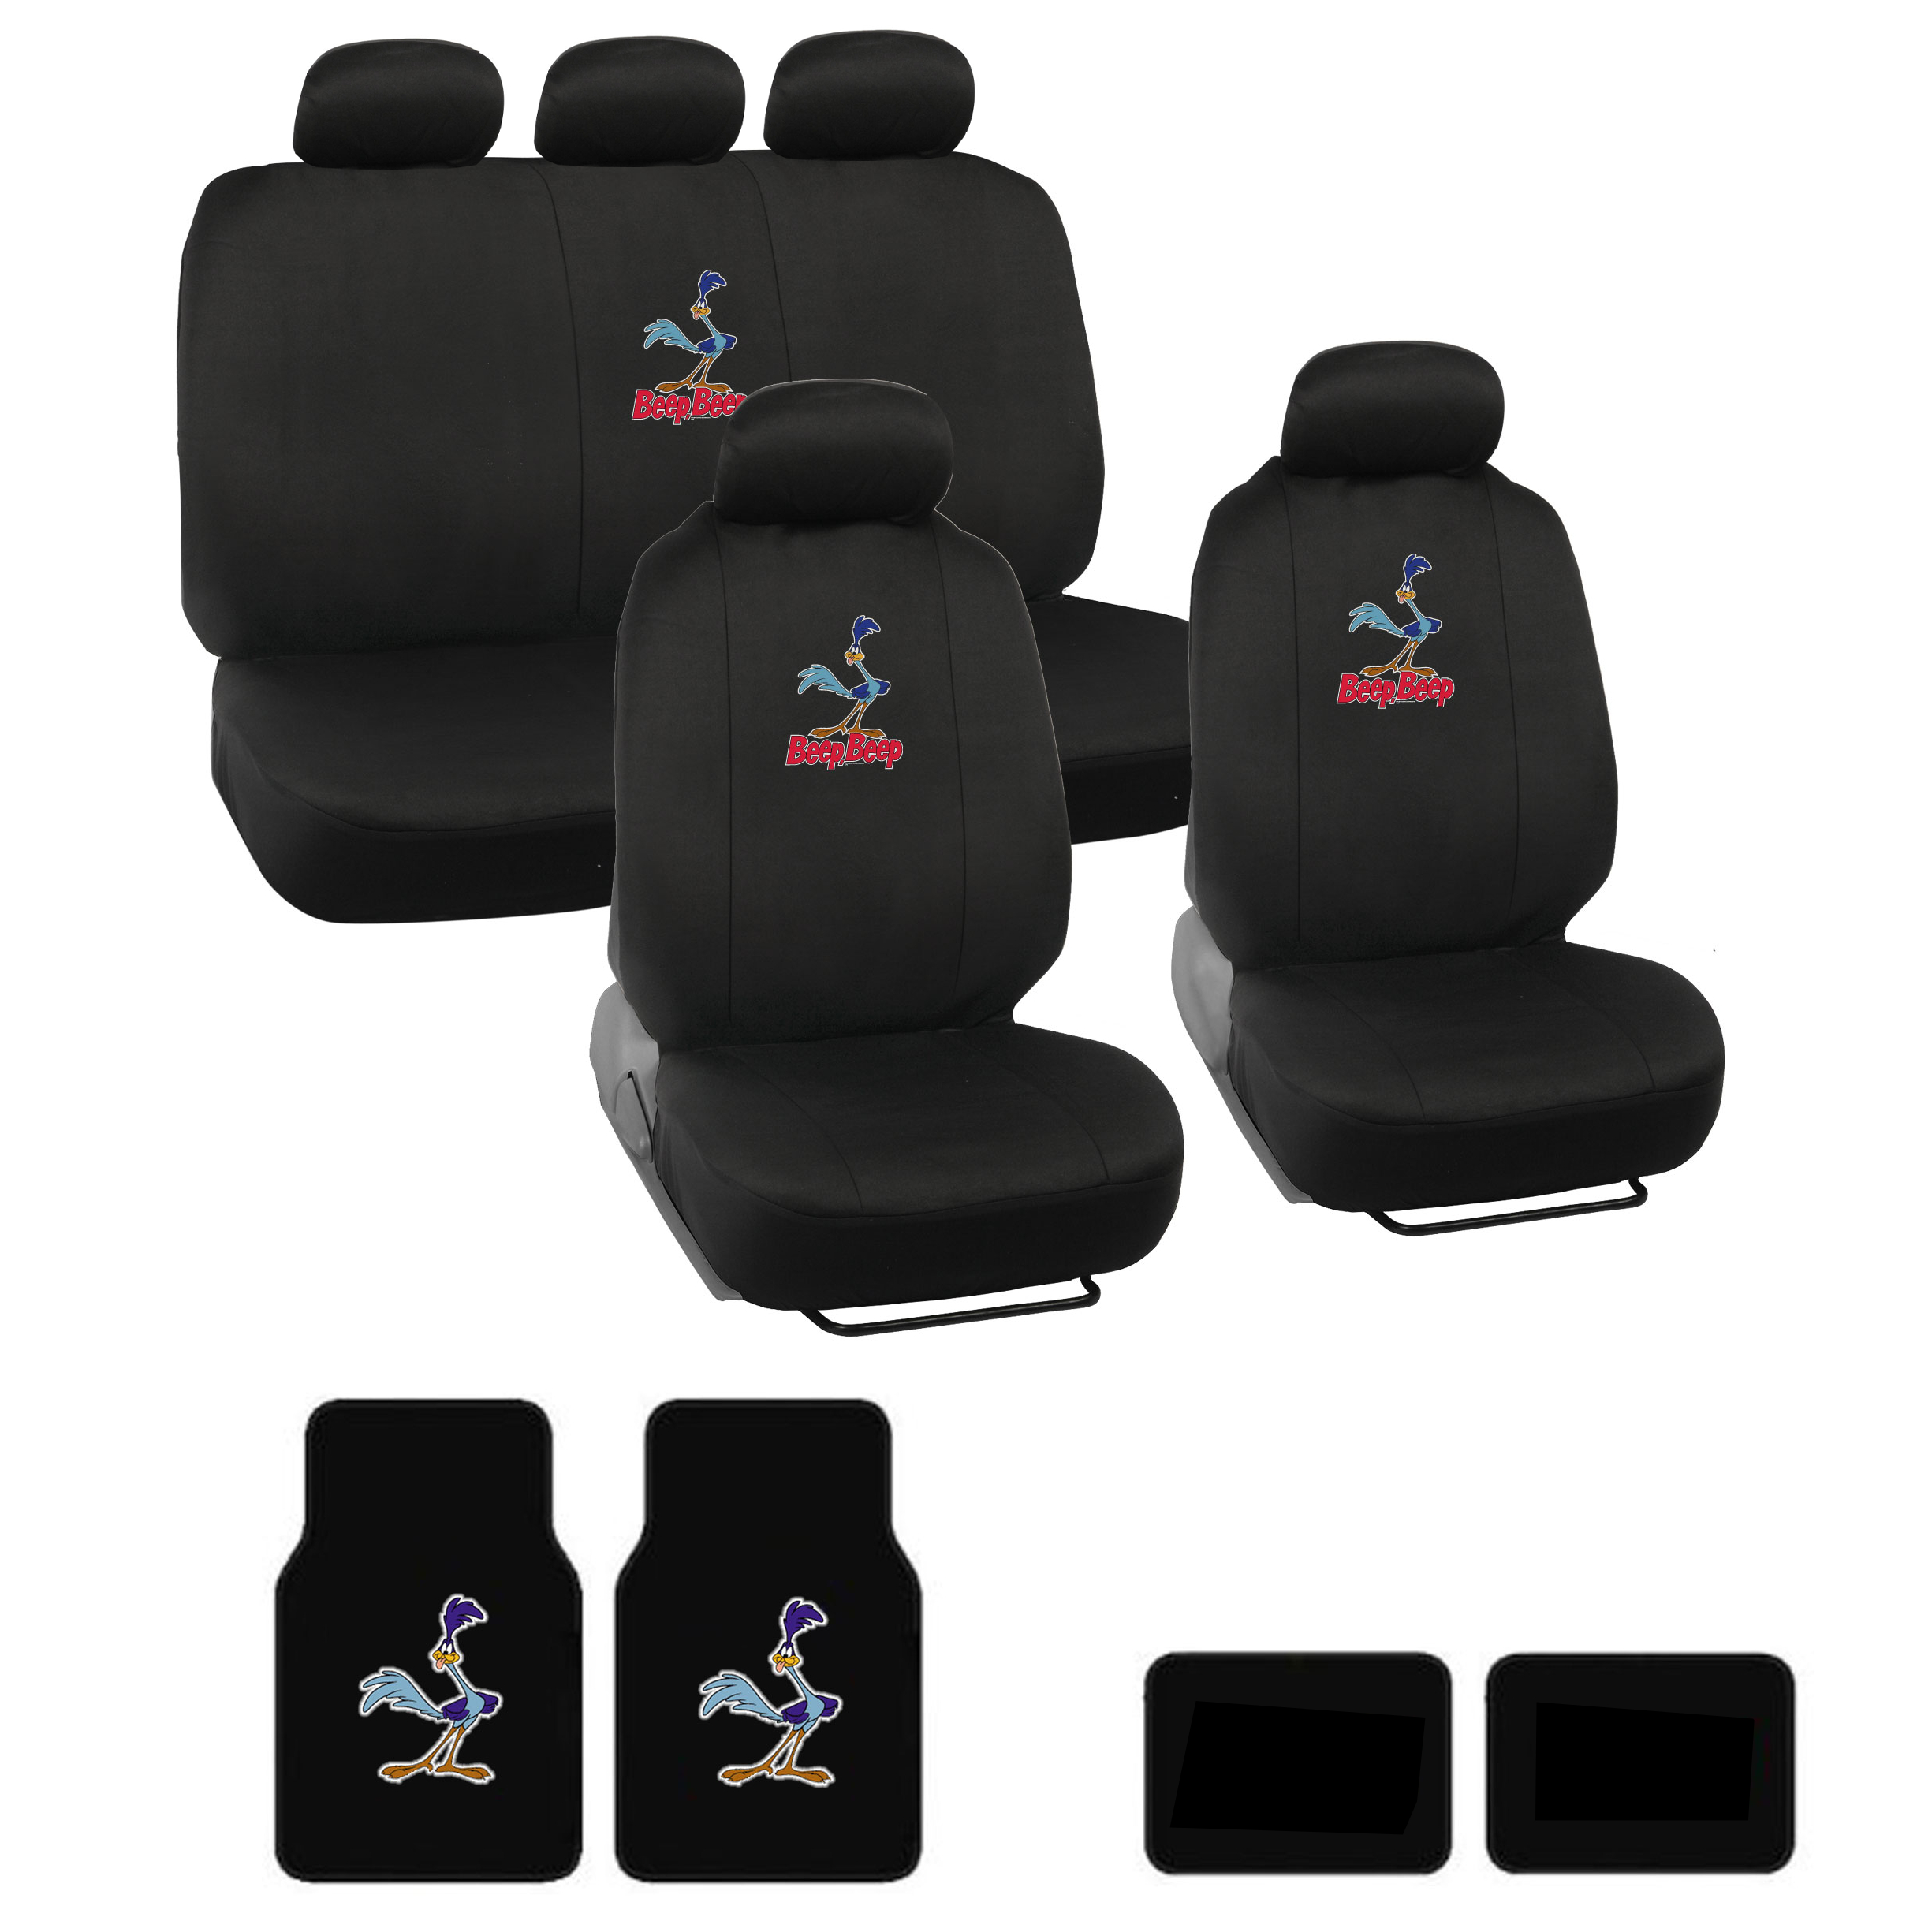 Bmw Z3 Seat Covers: Looney Tunes Road Runner Car Floor Mats And Seat Covers